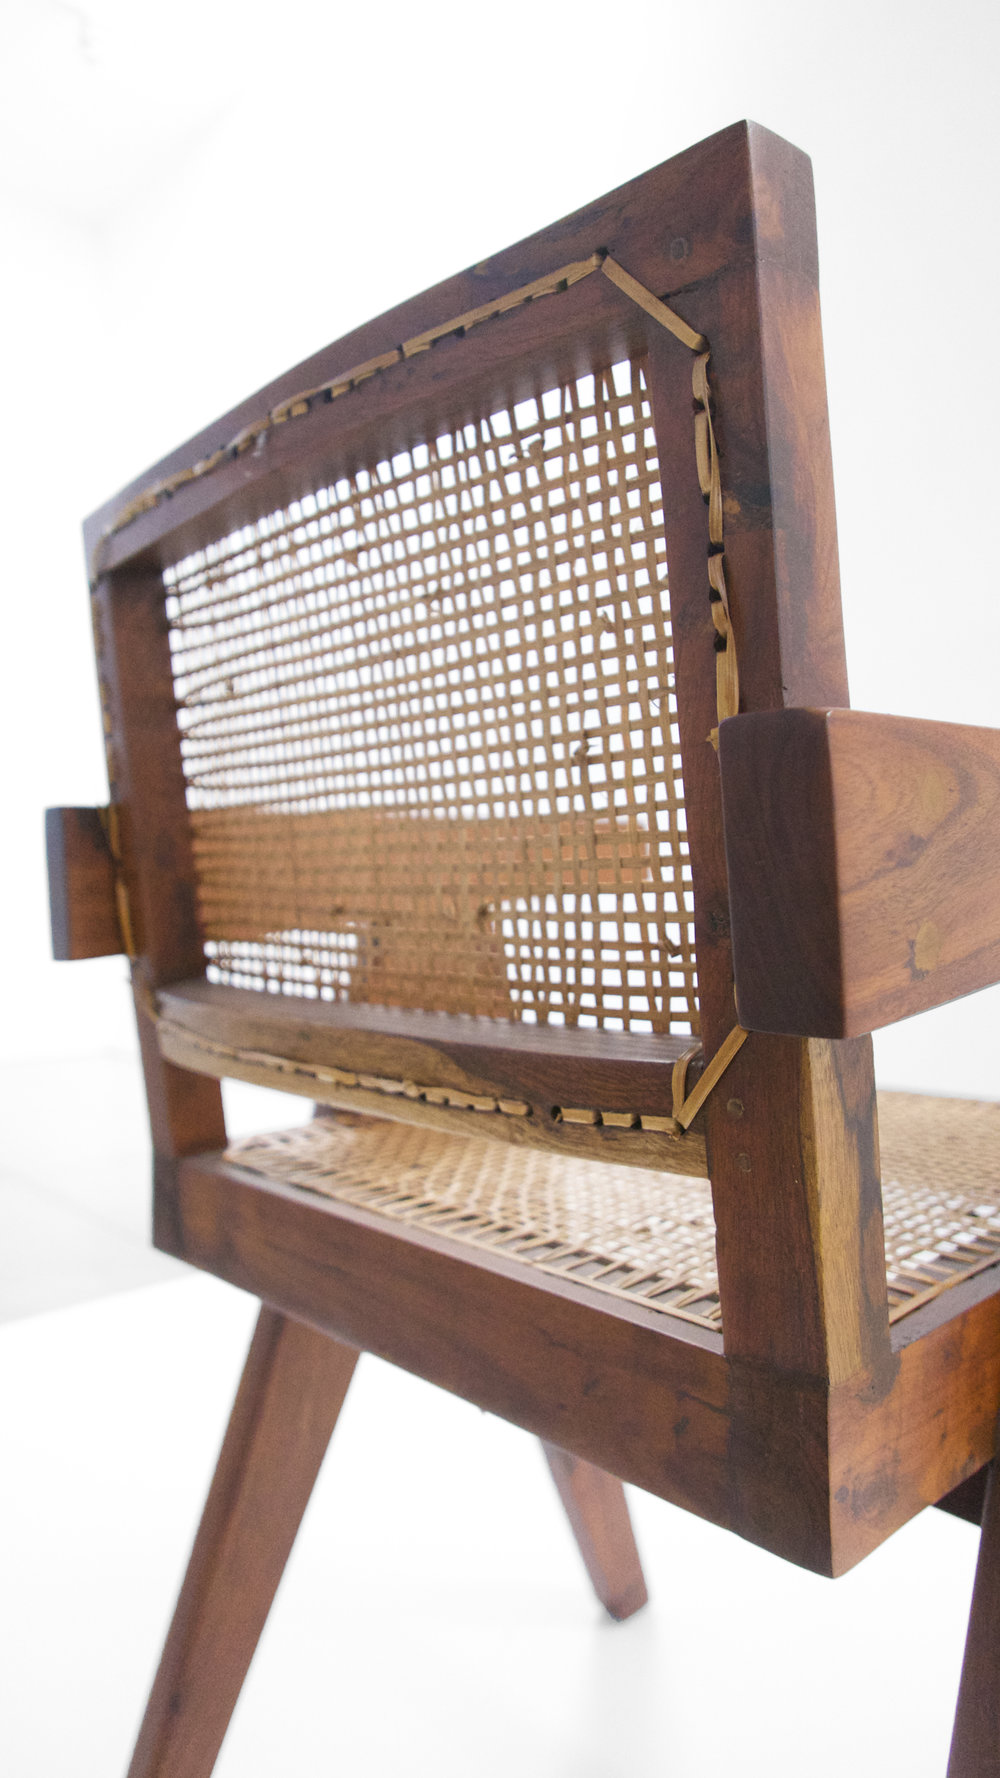 Pierre Jeanneret, Teak Conference Chair from the City of Chandigarh, India, c. 1952, 31 H x 18 W x 19.75 D inches_7.jpg